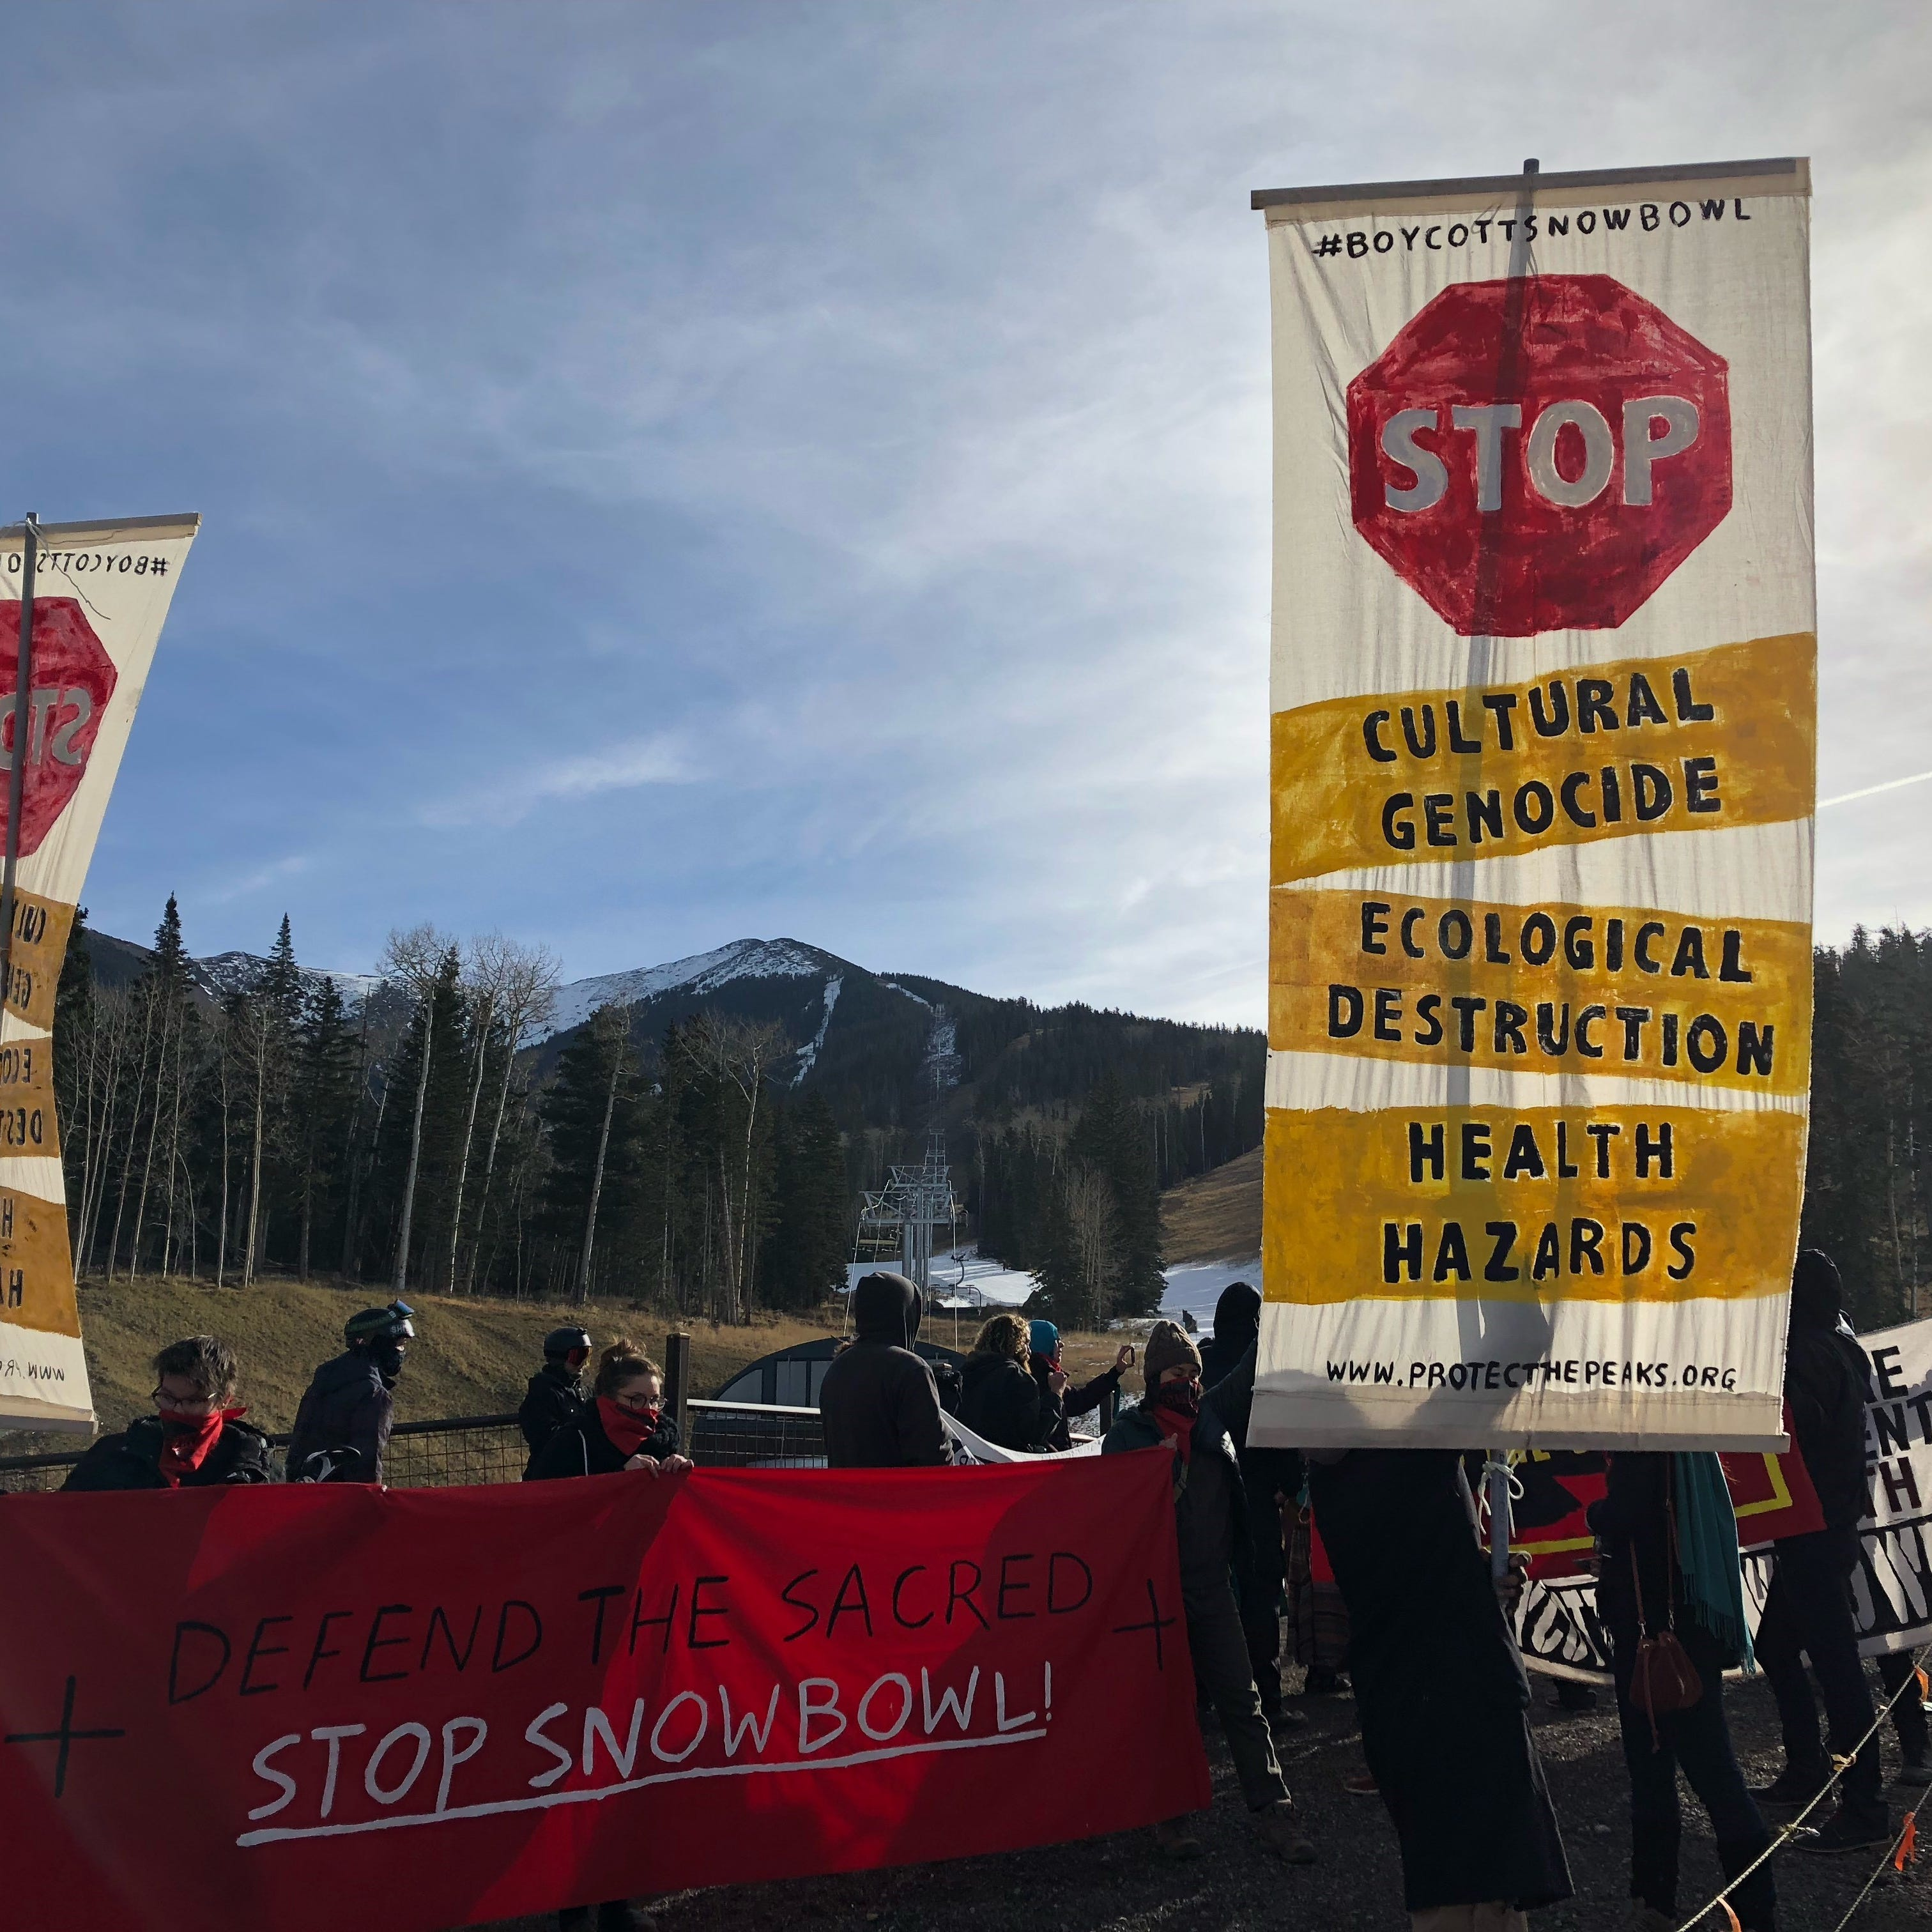 In Flagstaff, skiers and protesters show up for Snowbowl's opening day on machine-made snow